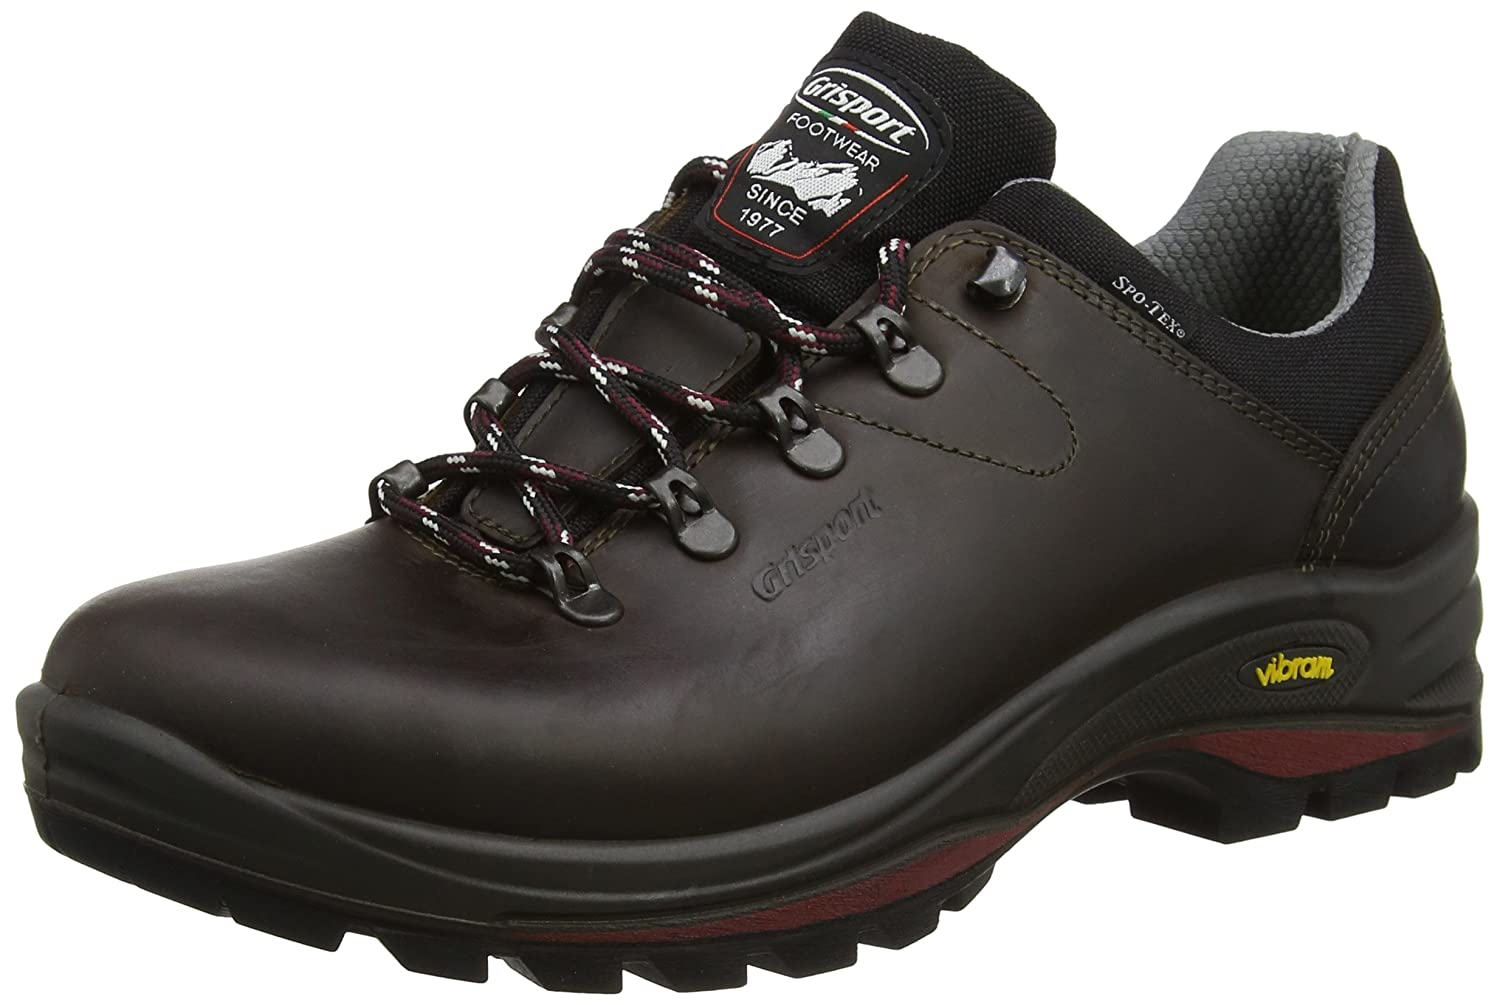 Grisport Unisex Modena Hiking Shoe Brown CMG036 3 UK